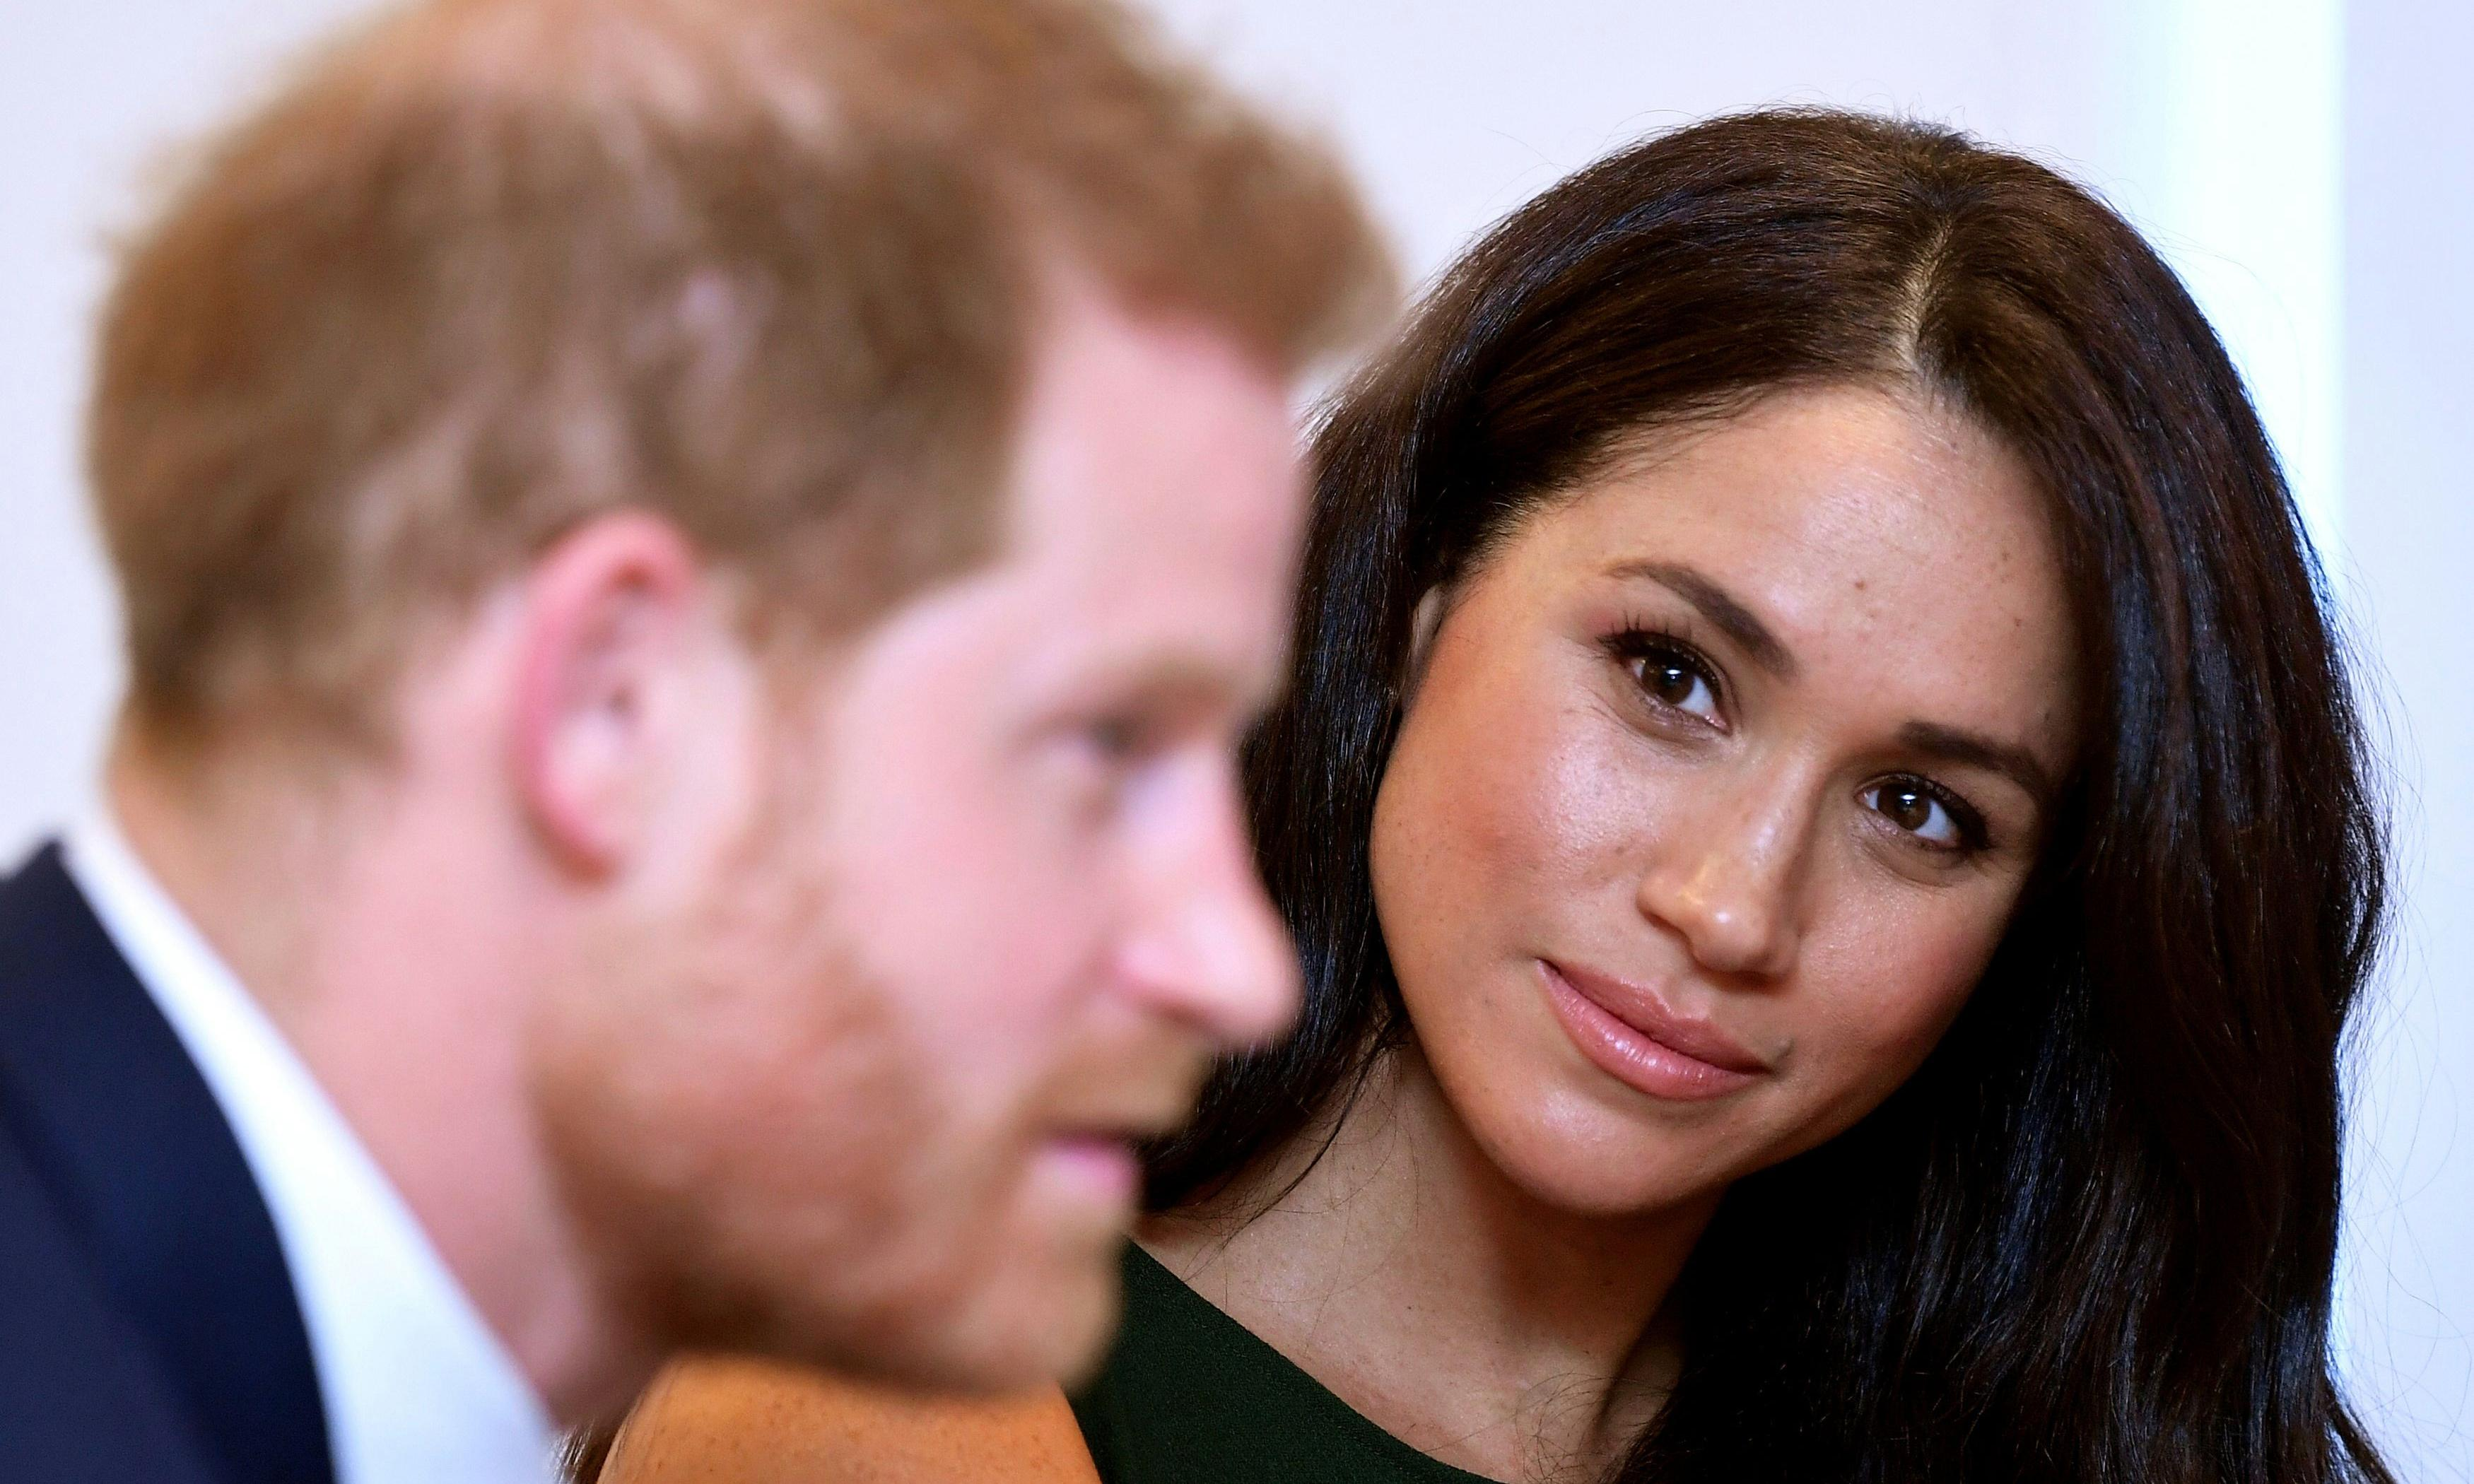 For Harry and Meghan, Canada media's respect for privacy is good news